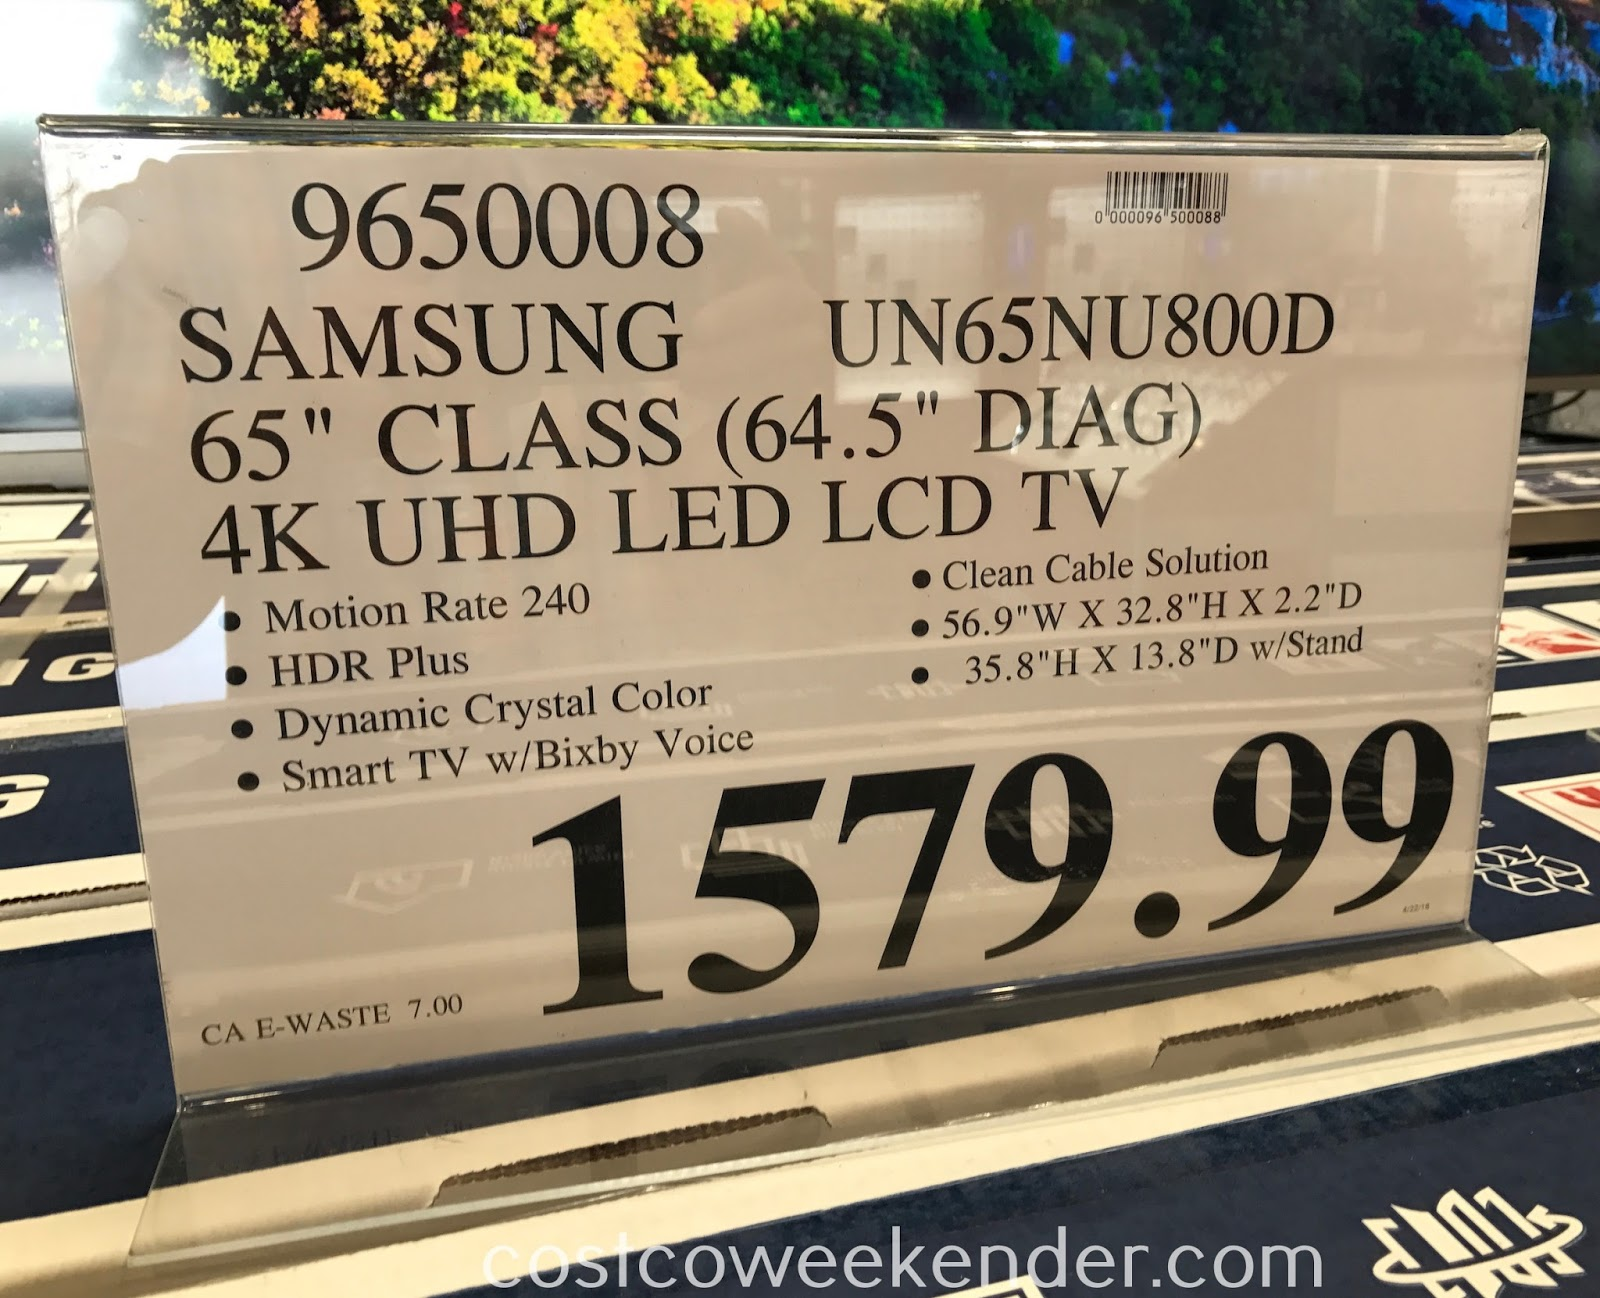 Deal for the Samsung UN65NU800D 65in tv at Costco